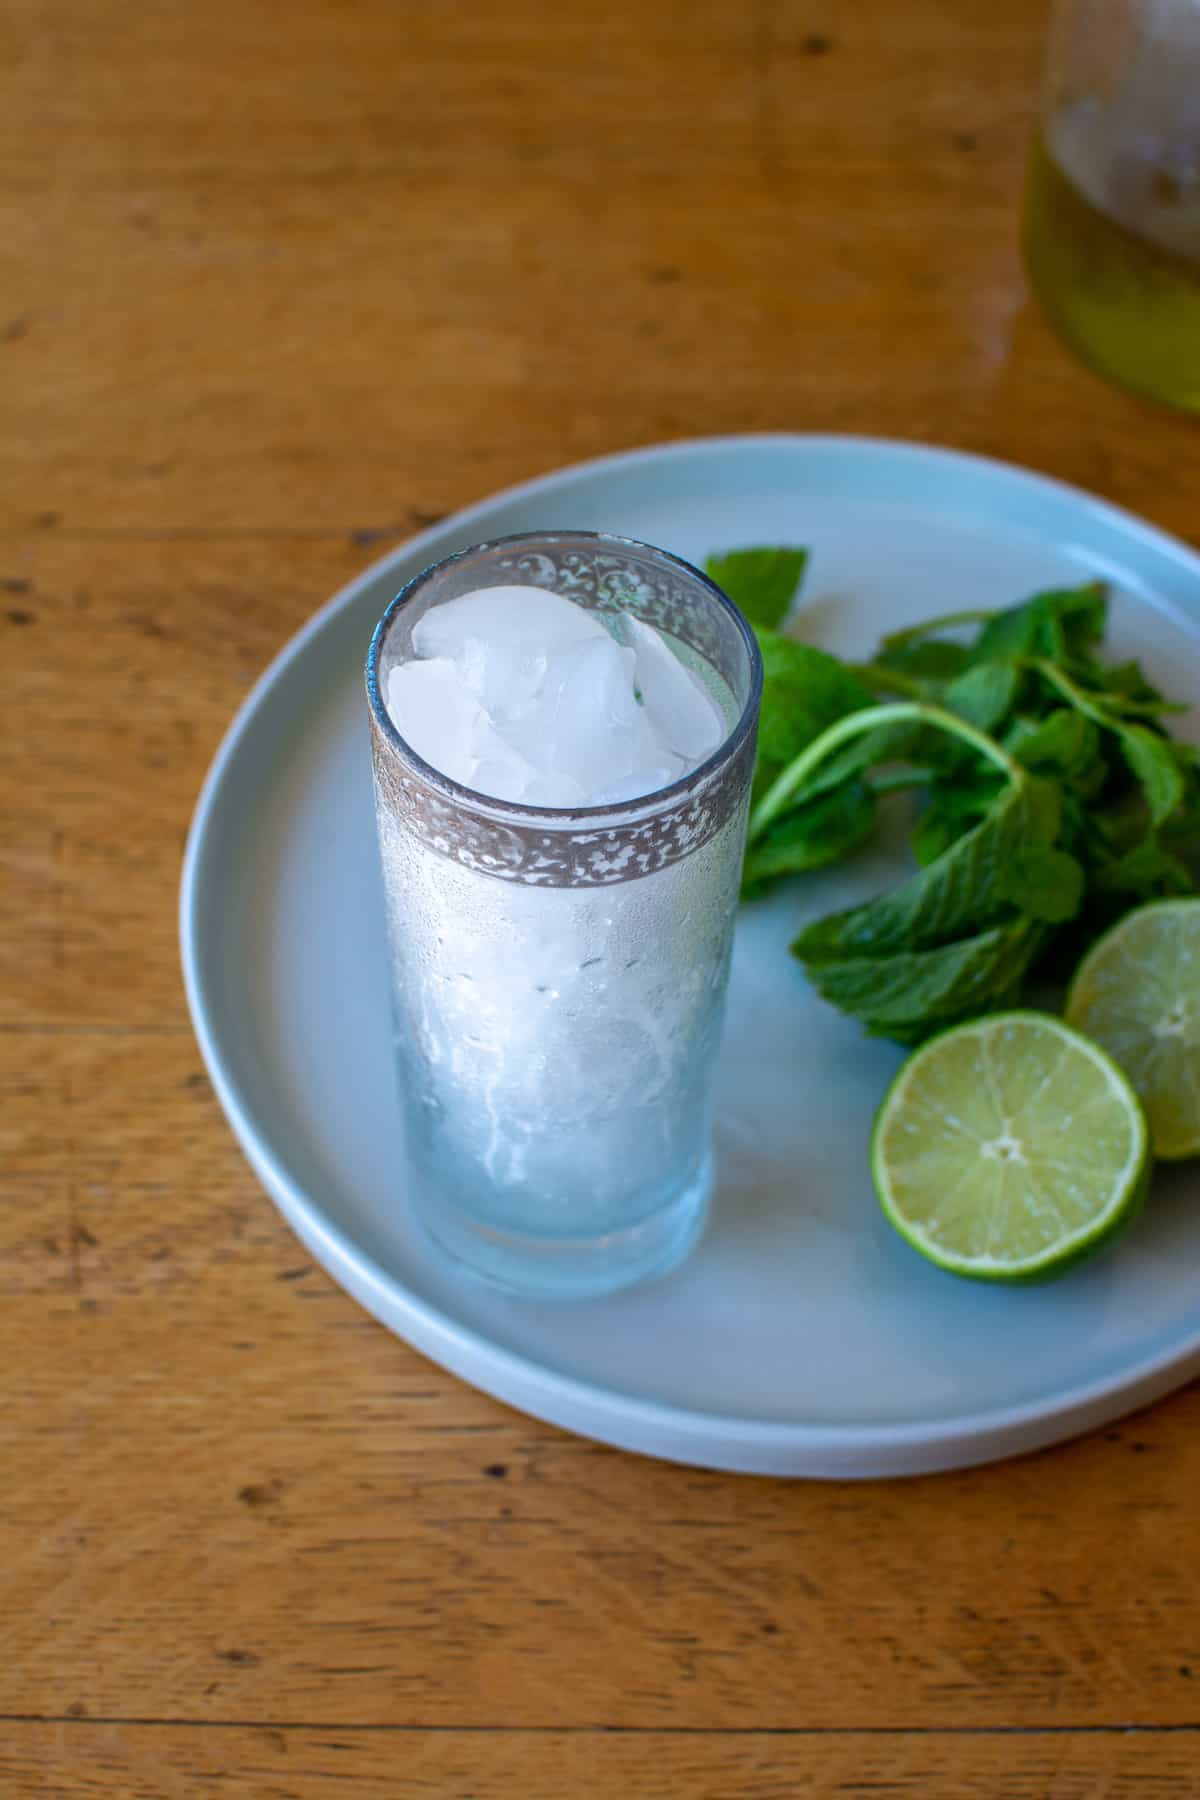 A tall glass filled with ice on a white plate next to a lime cut in half and sprigs of mint.